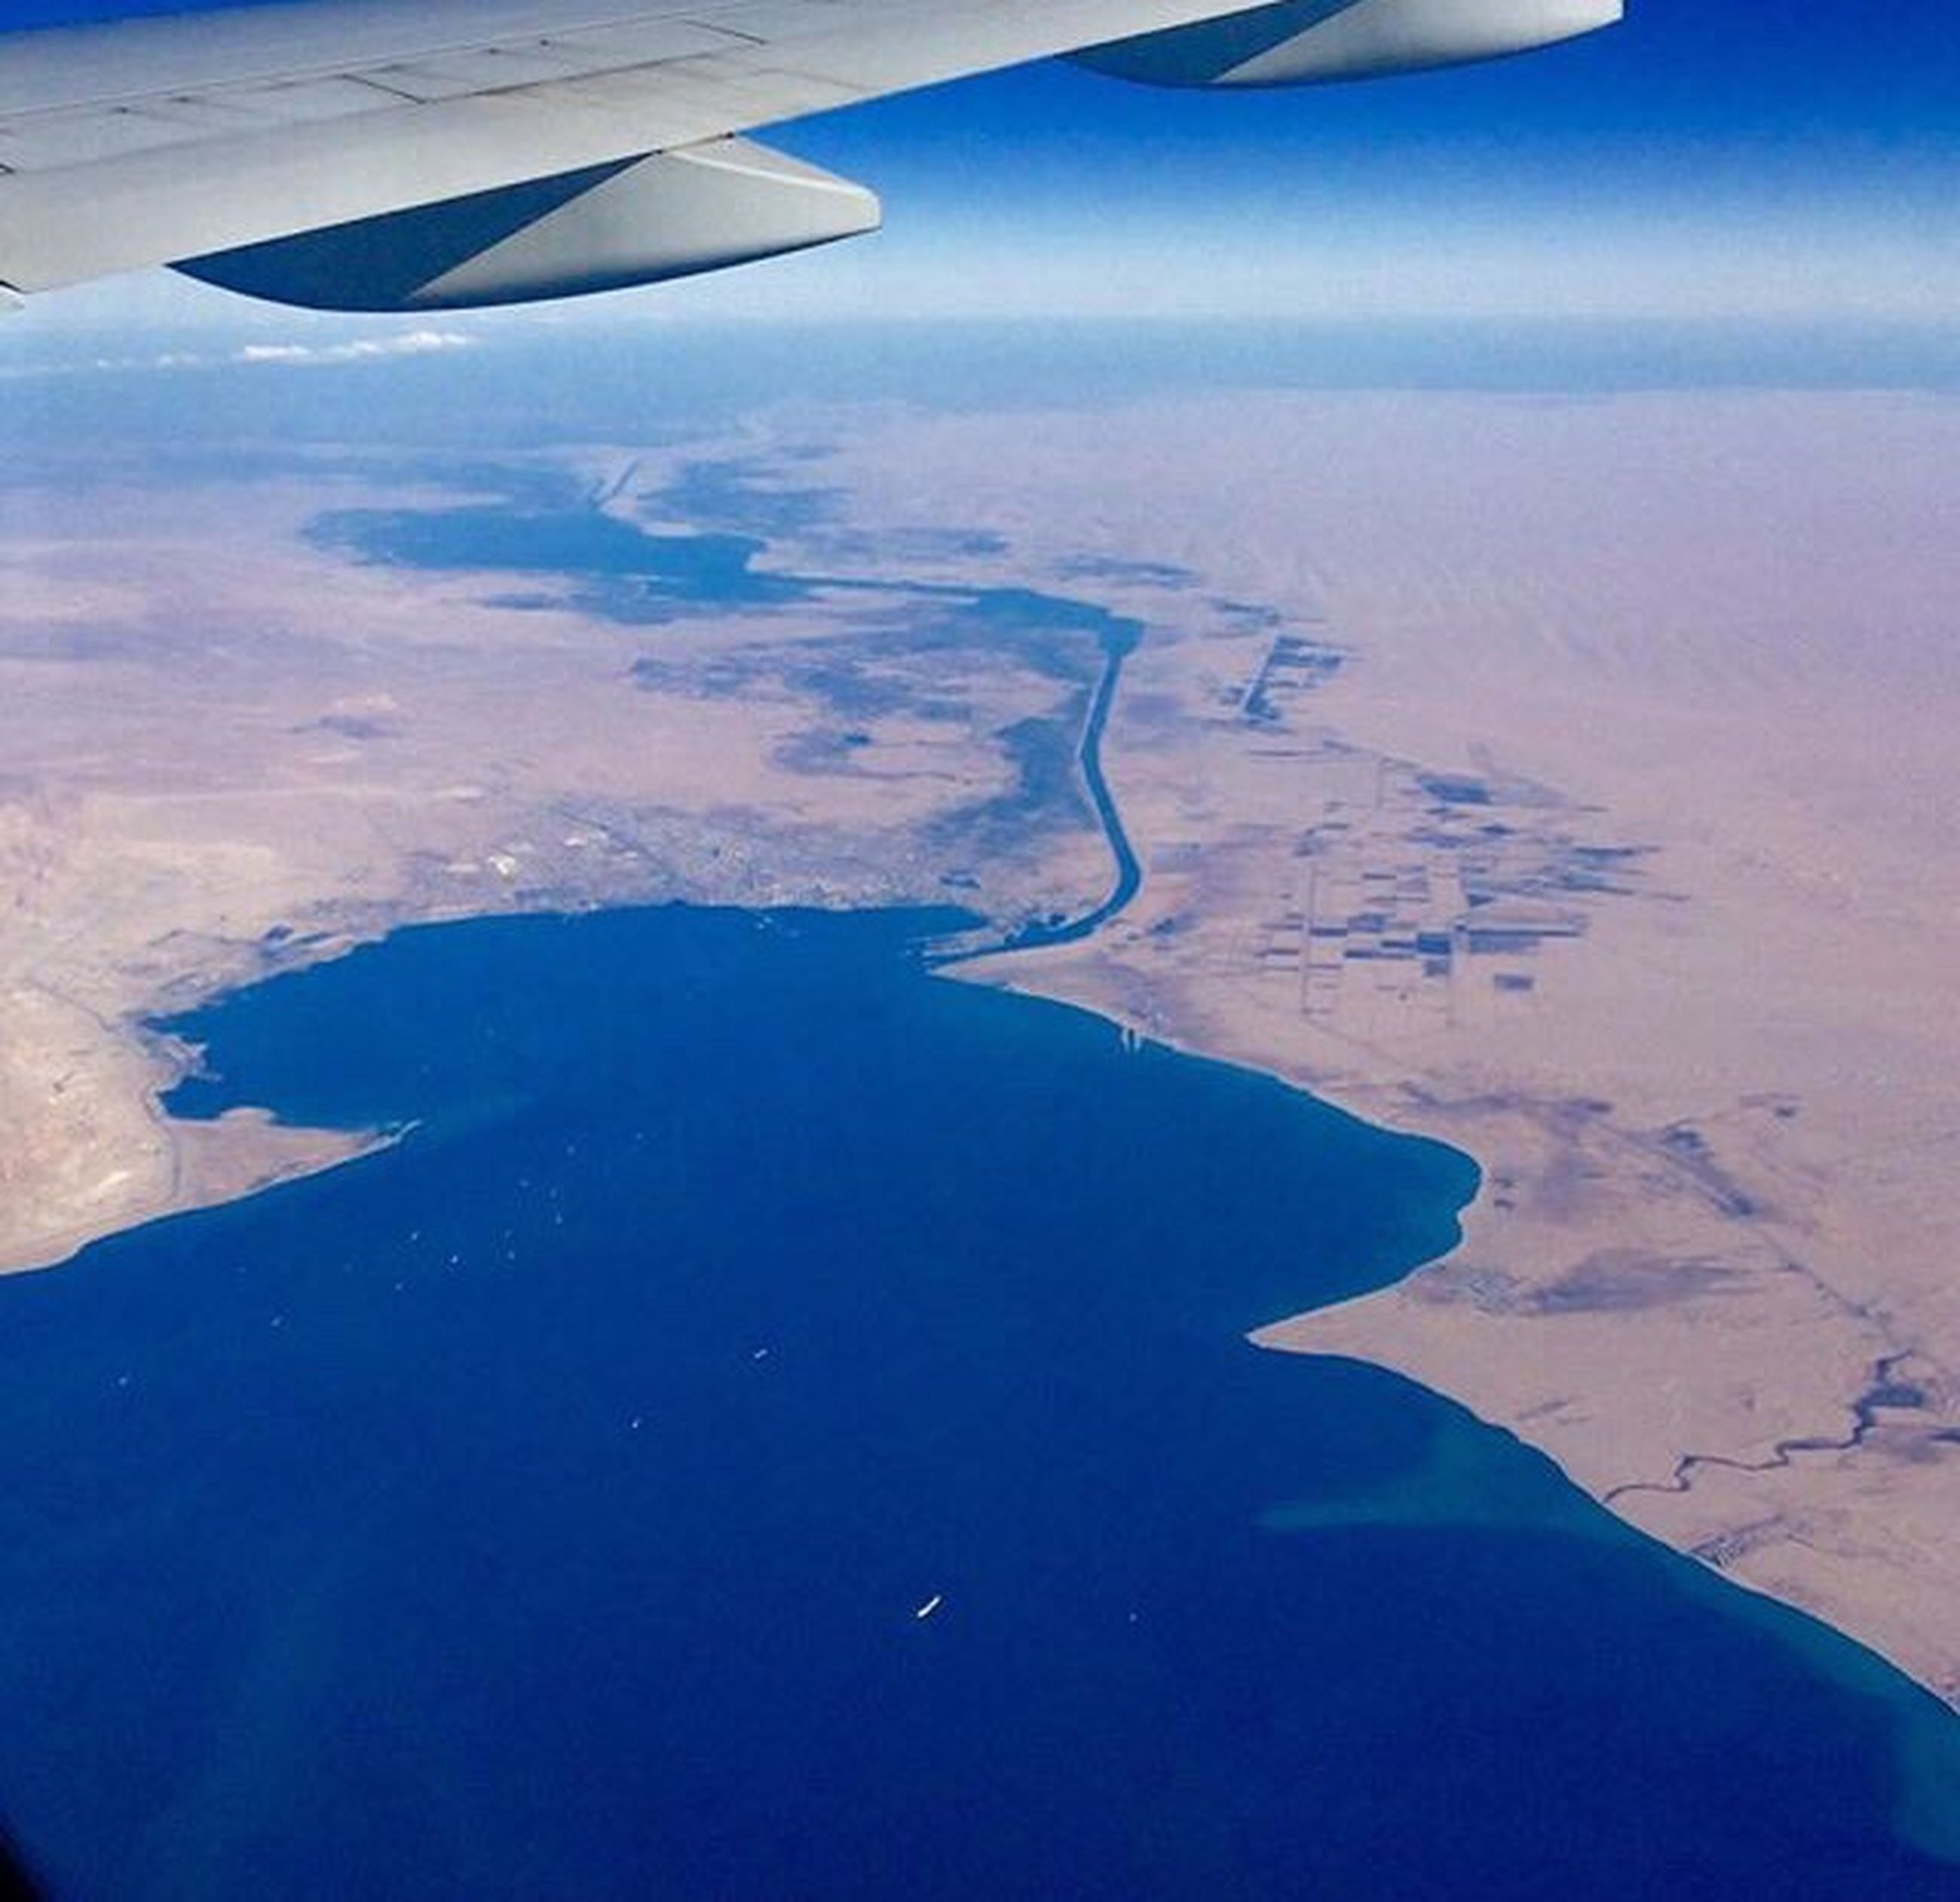 aerial view, flying, airplane, aircraft wing, travel, landscape, idyllic, tropical climate, scenics, no people, outdoors, beauty in nature, nature, water, sky, day